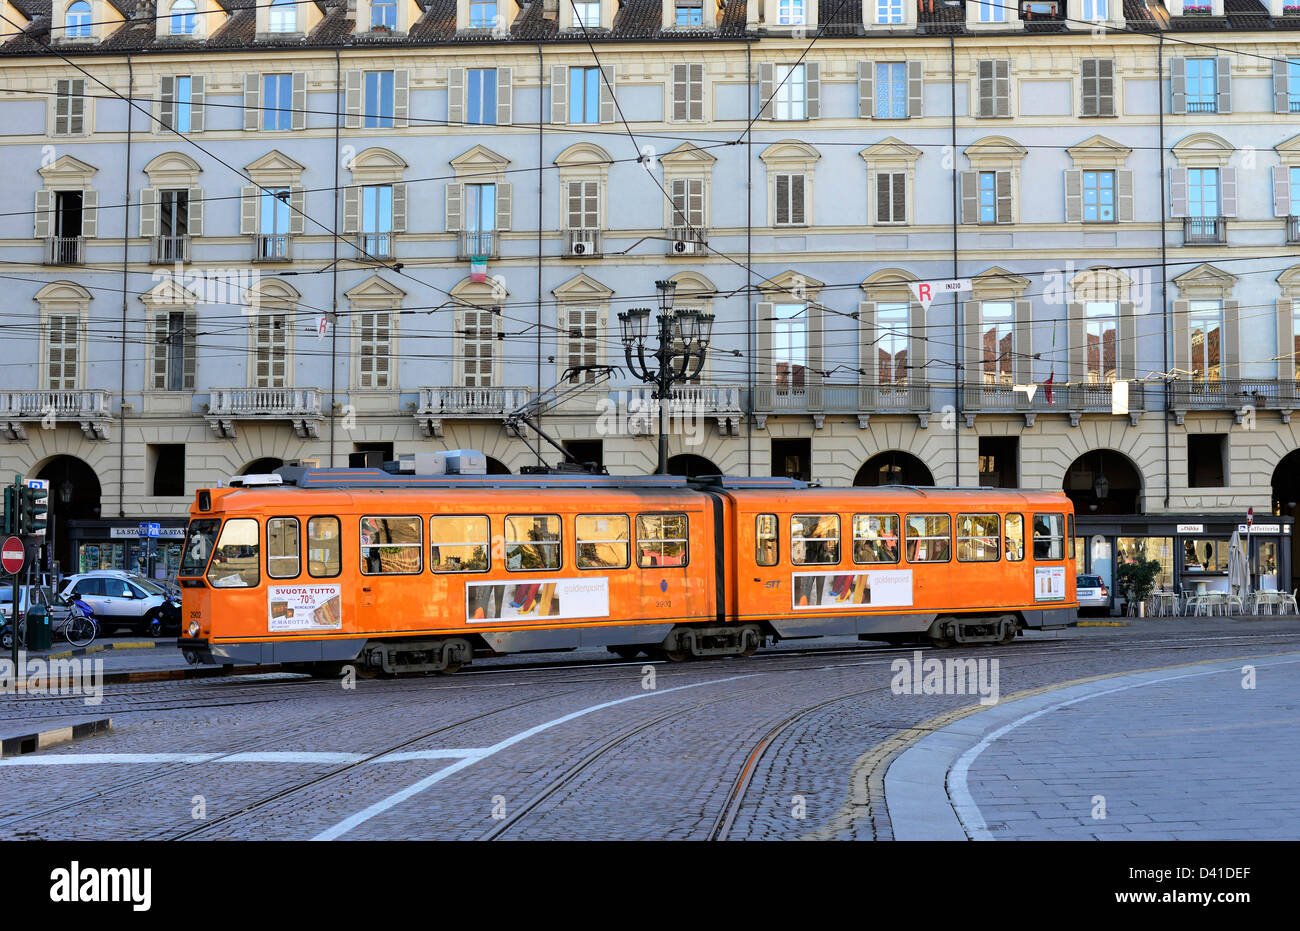 An old tram in Turin Italy. - Stock Image